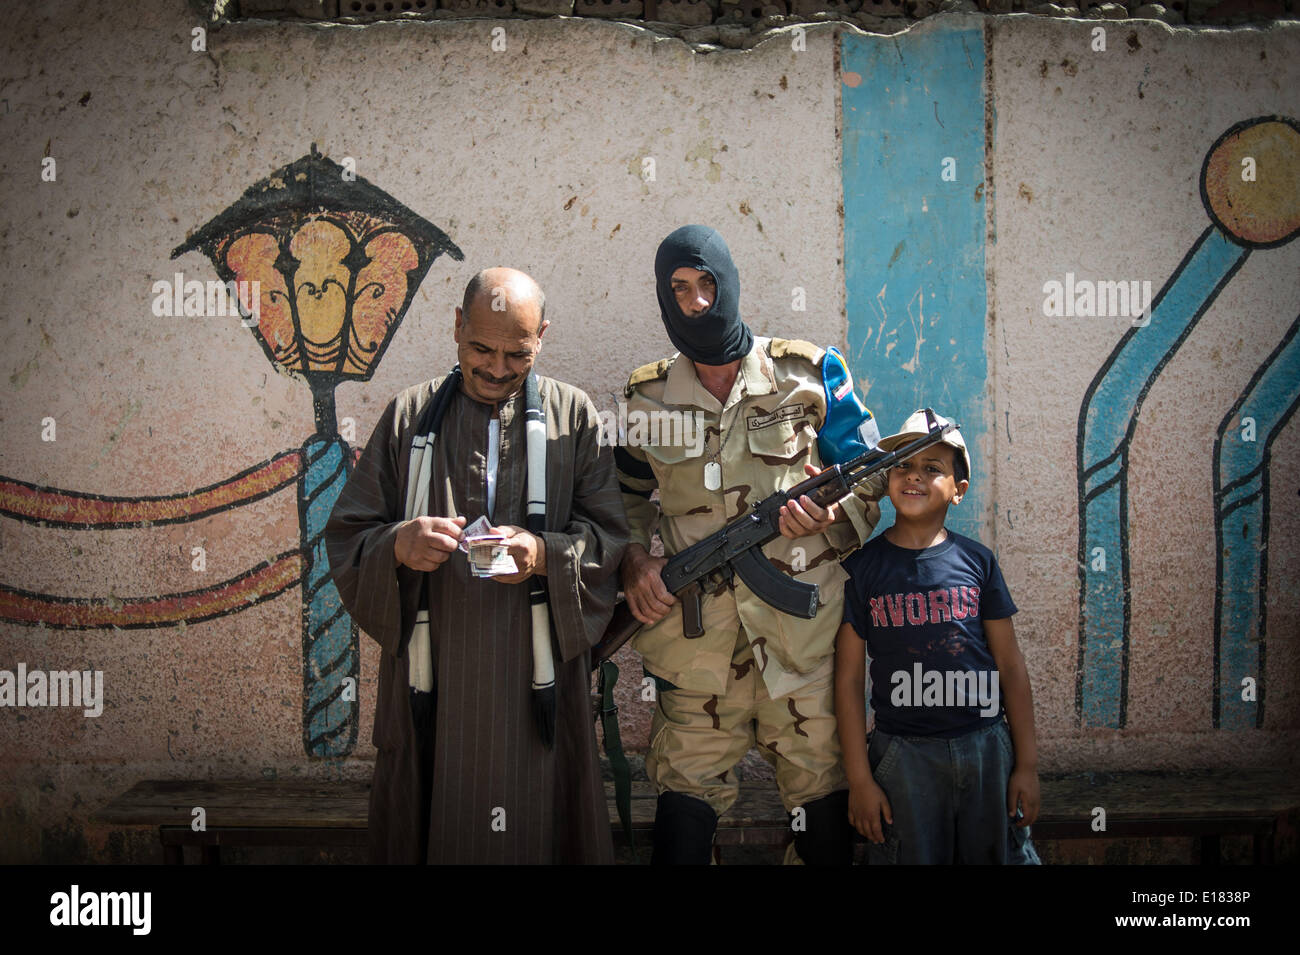 Cairo, Egypt. 26th May, 2014. An Egyptian army solider poses with a boy and a vendor inside a polling station in Cairo, Egypt, on May 26, 2014. Egypt held presidential election on Monday. Credit:  Pan Chaoyue/Xinhua/Alamy Live News - Stock Image